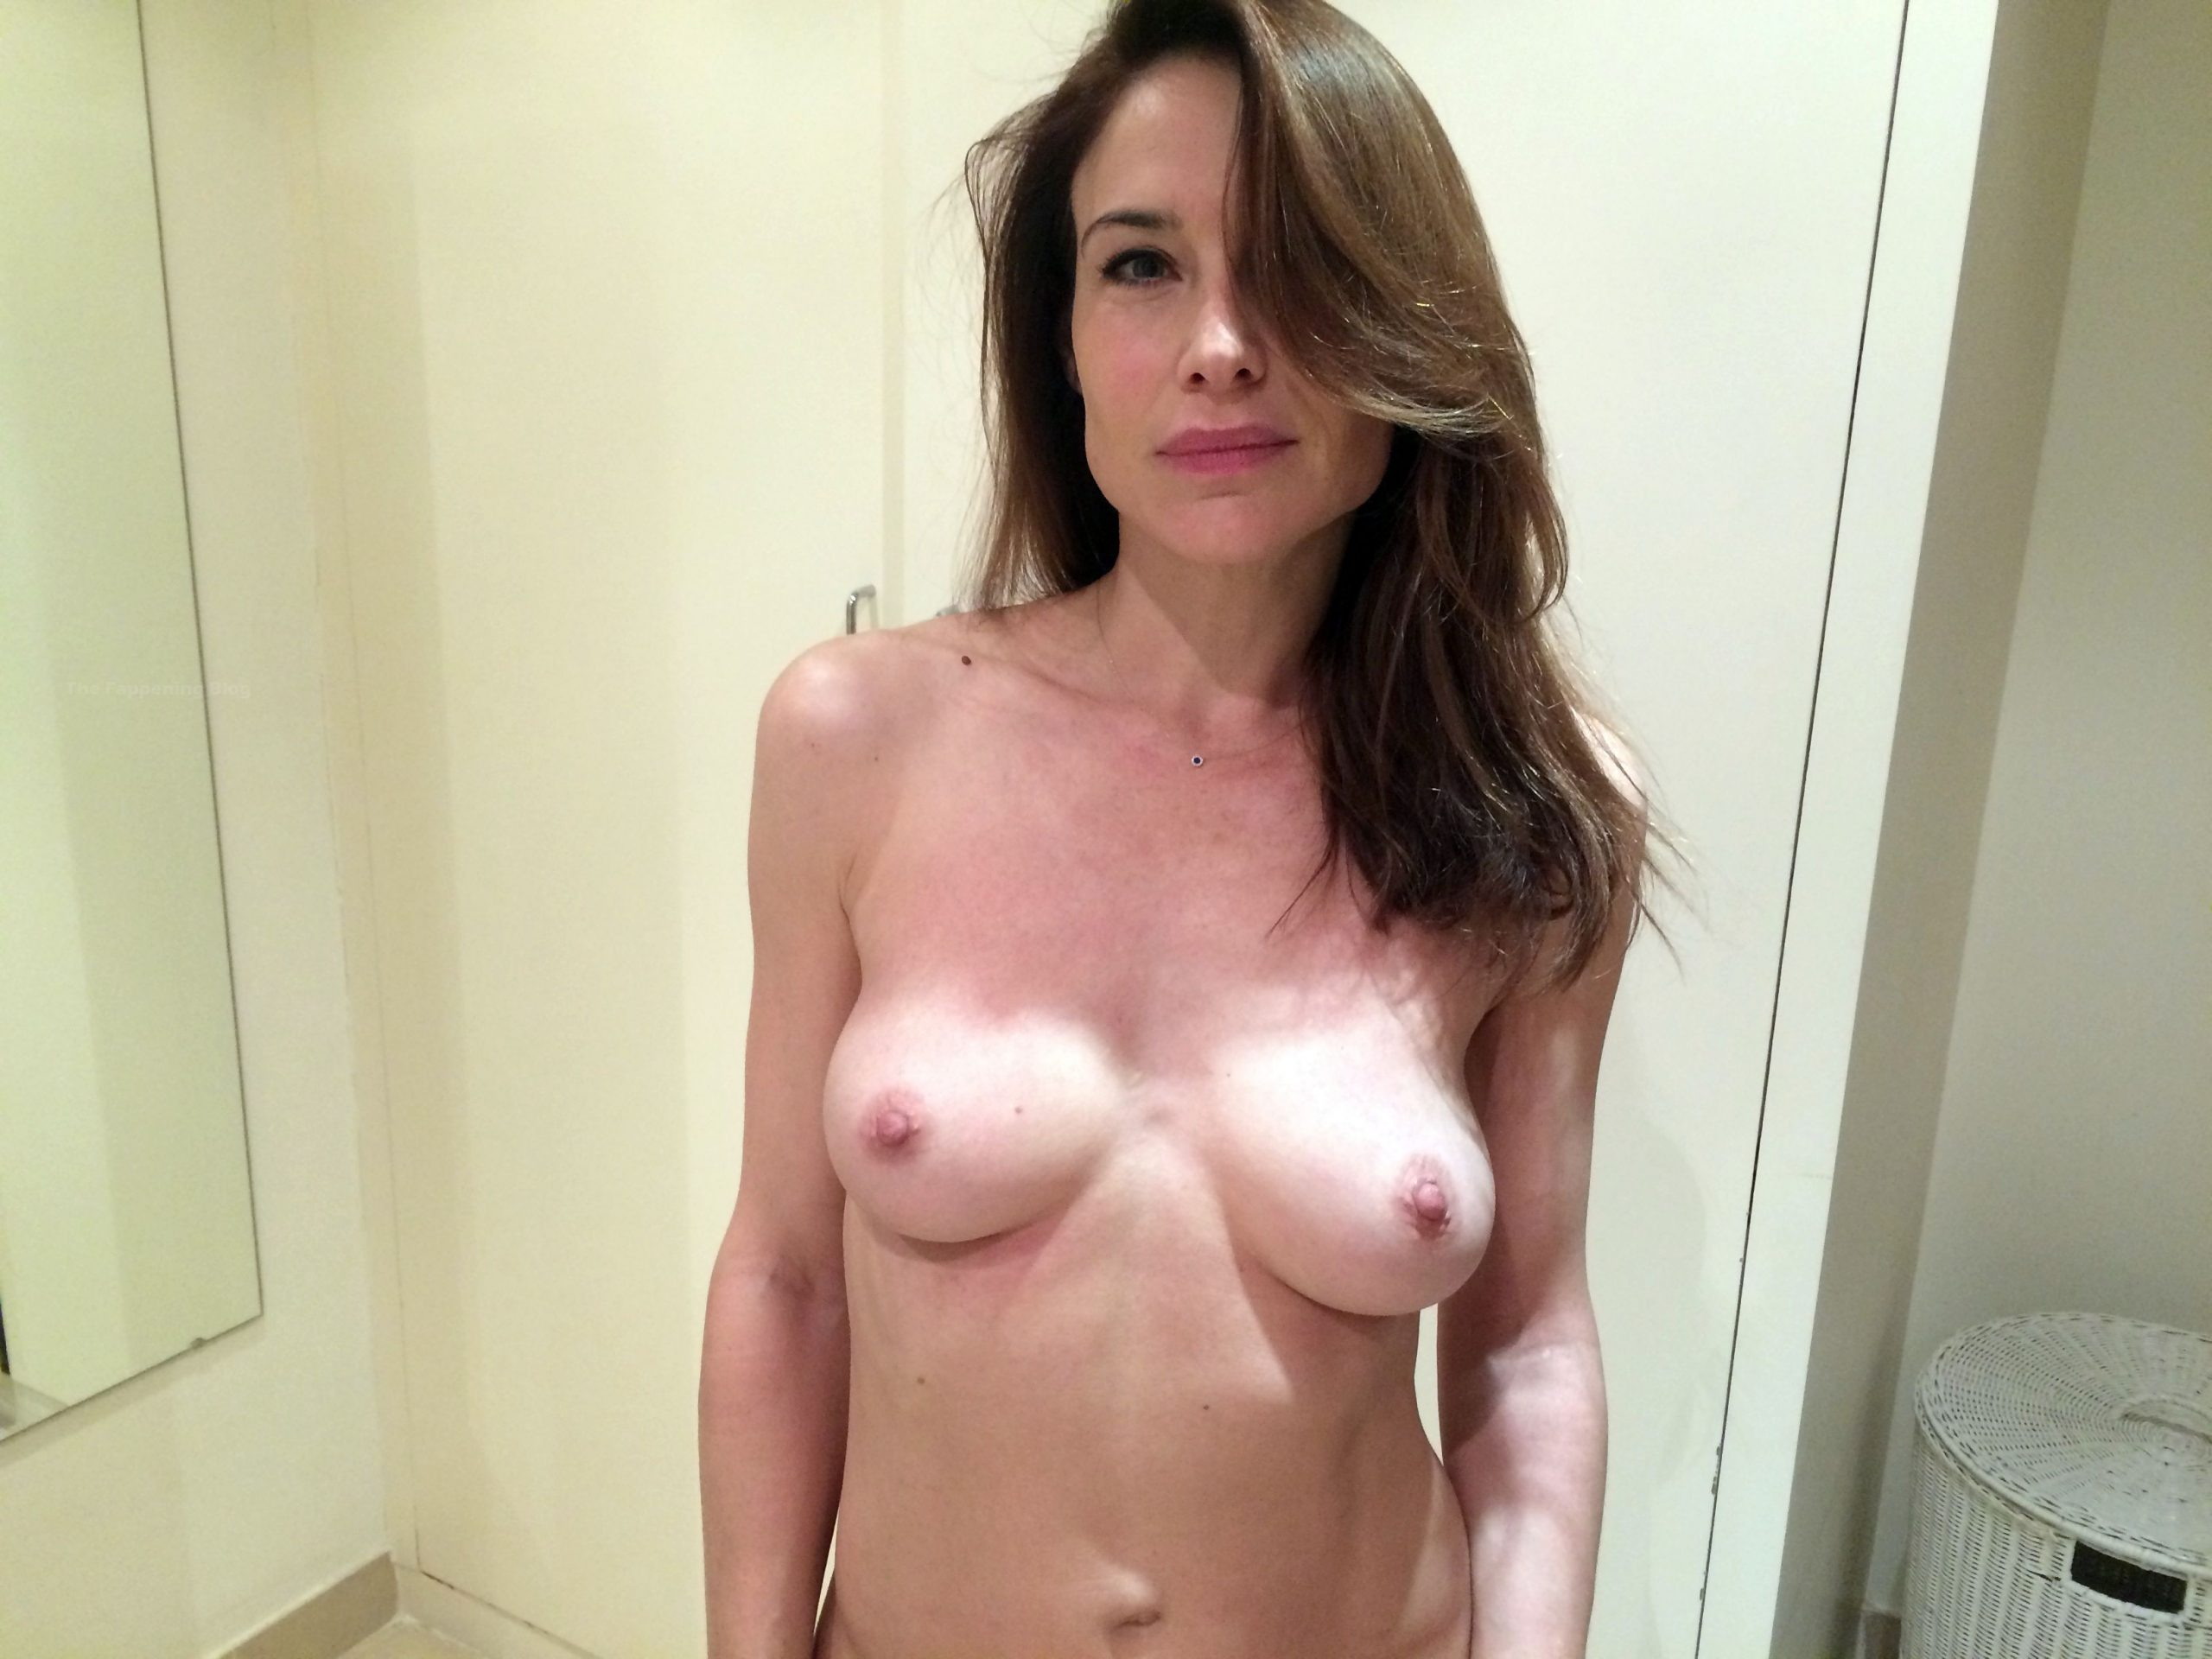 Claire Forlani Nude Leaked The Fappening 0001